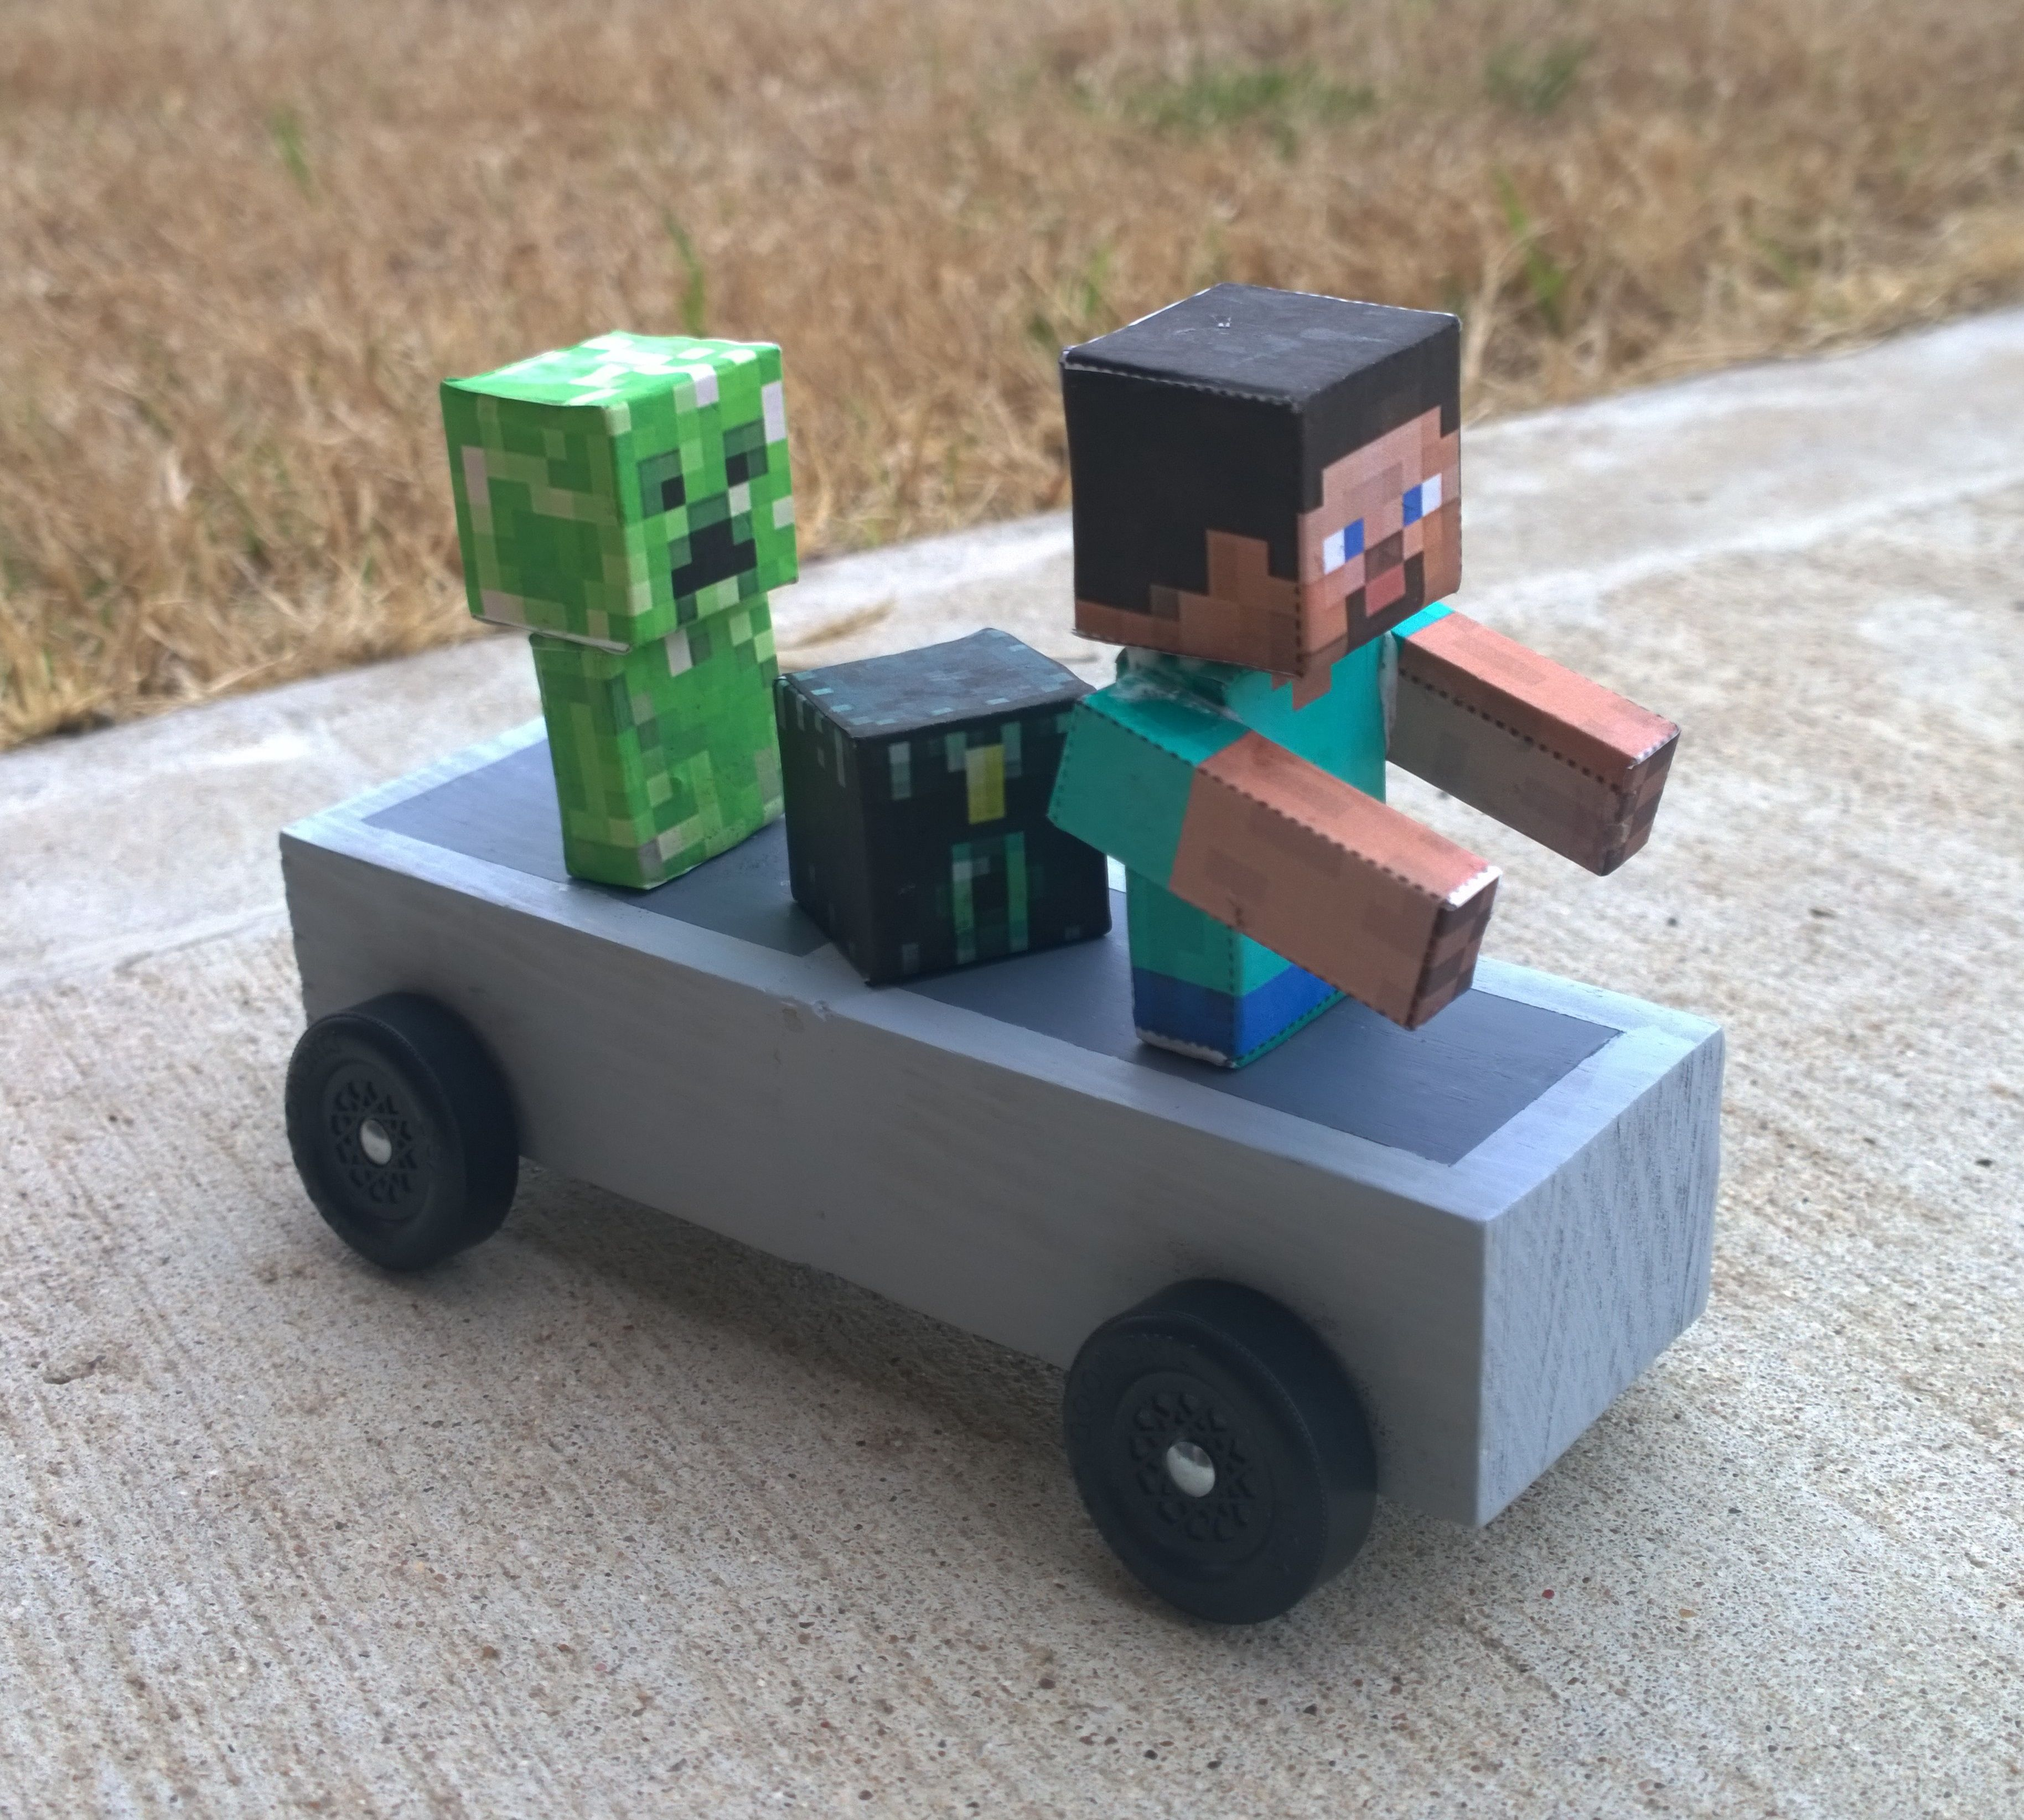 Minecraft Themed Pinewood Derby Cars Are Super Popular This Year